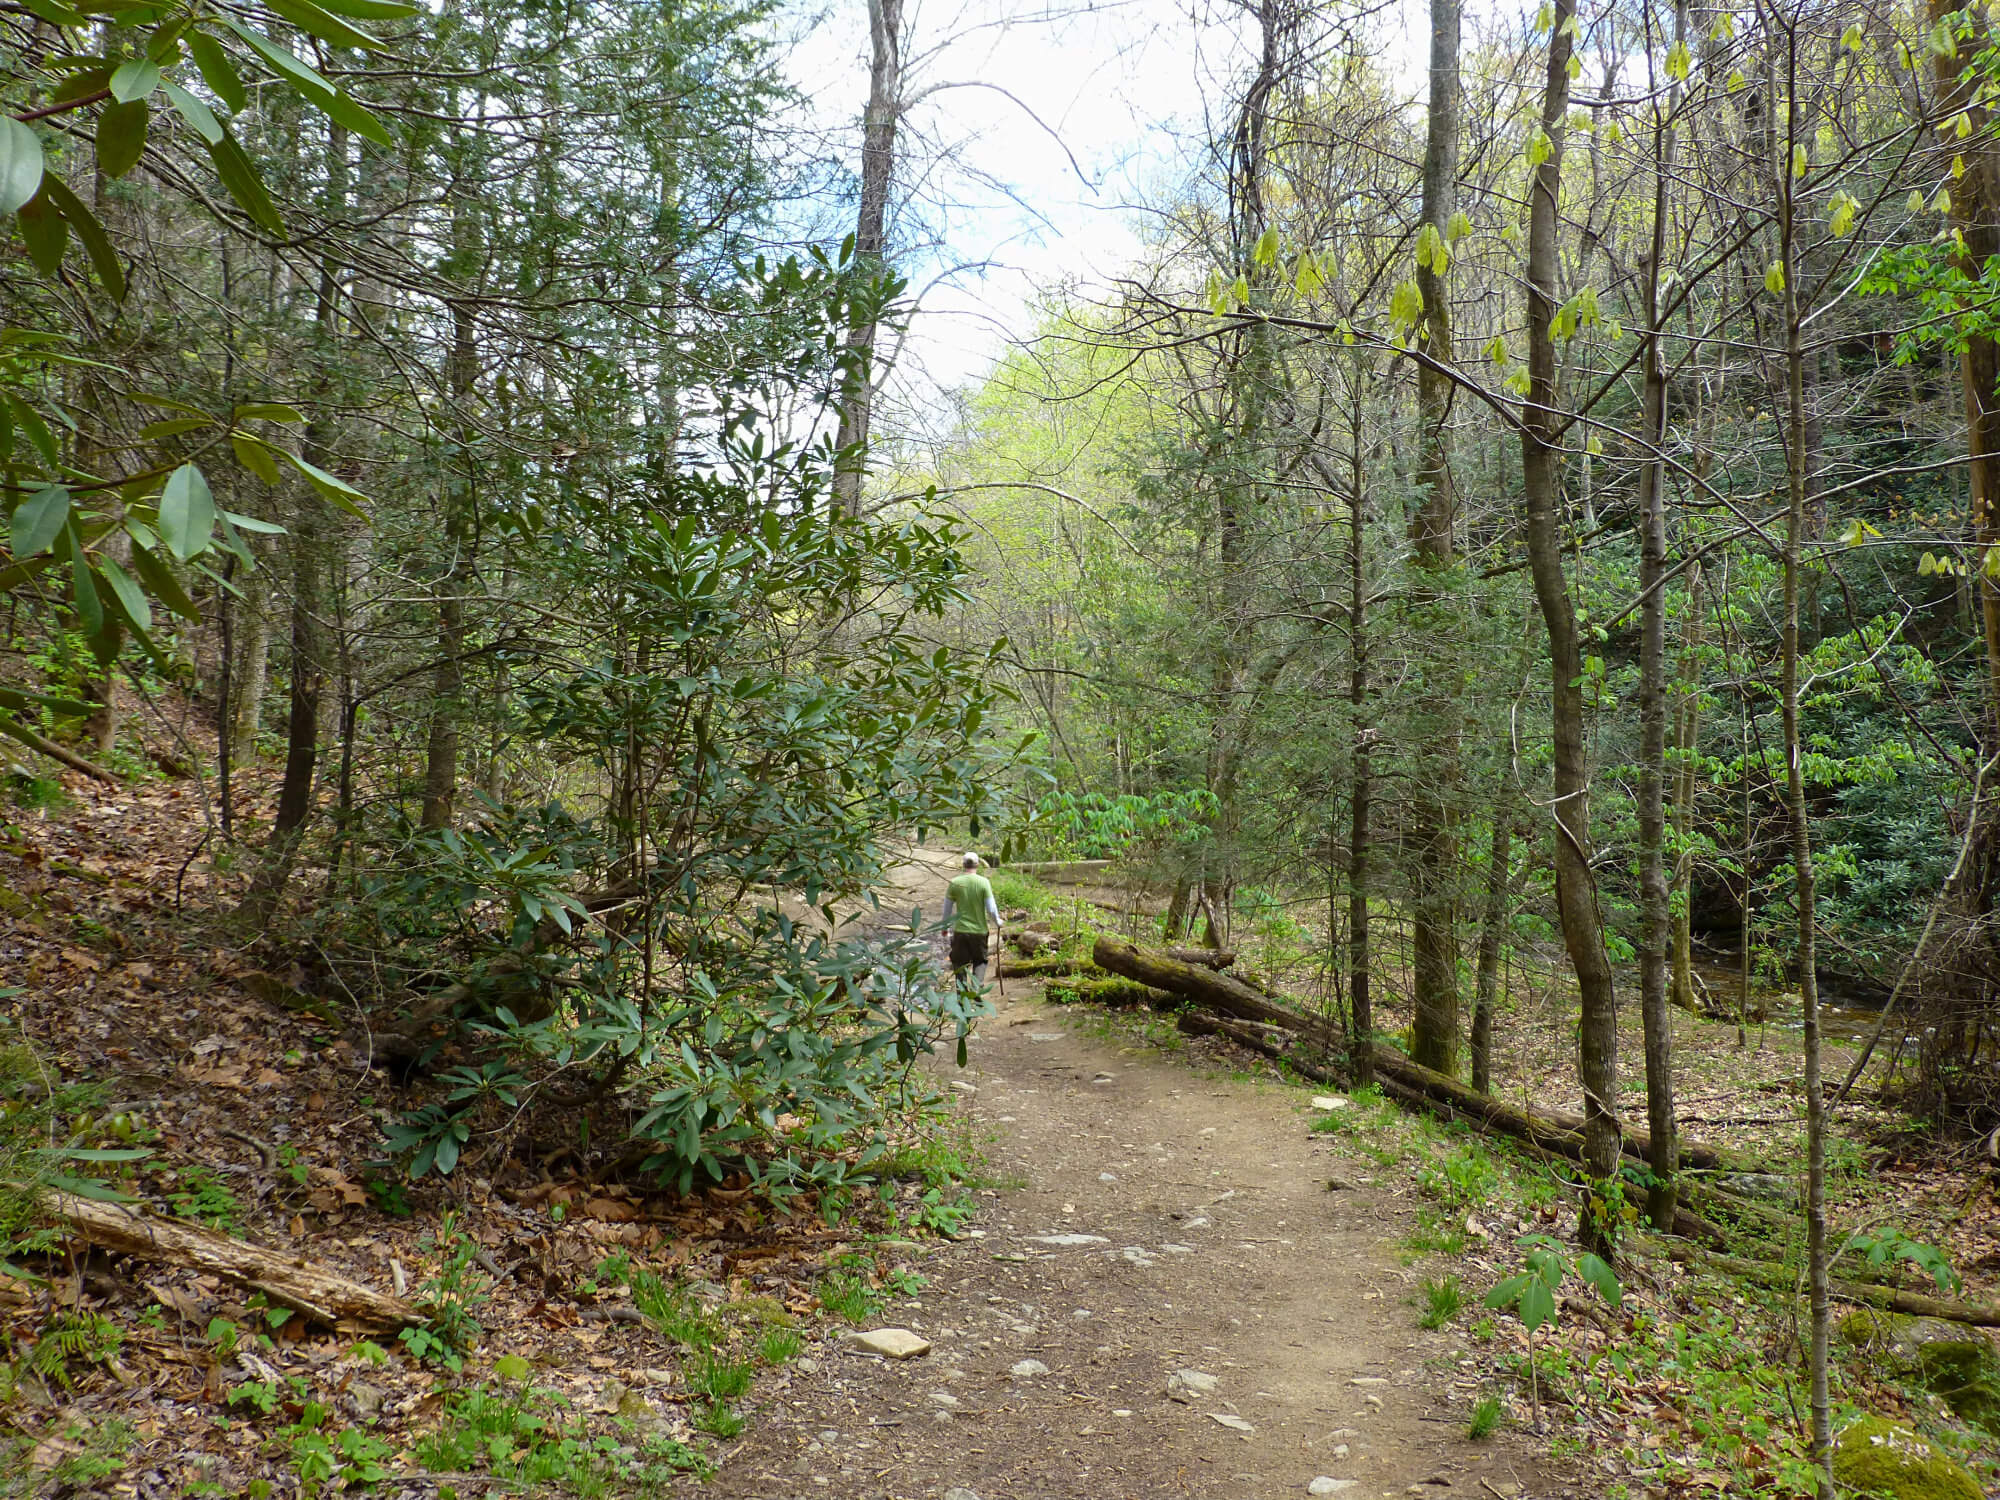 Man hiking down a forest trail that has trees that are just starting to leaf out